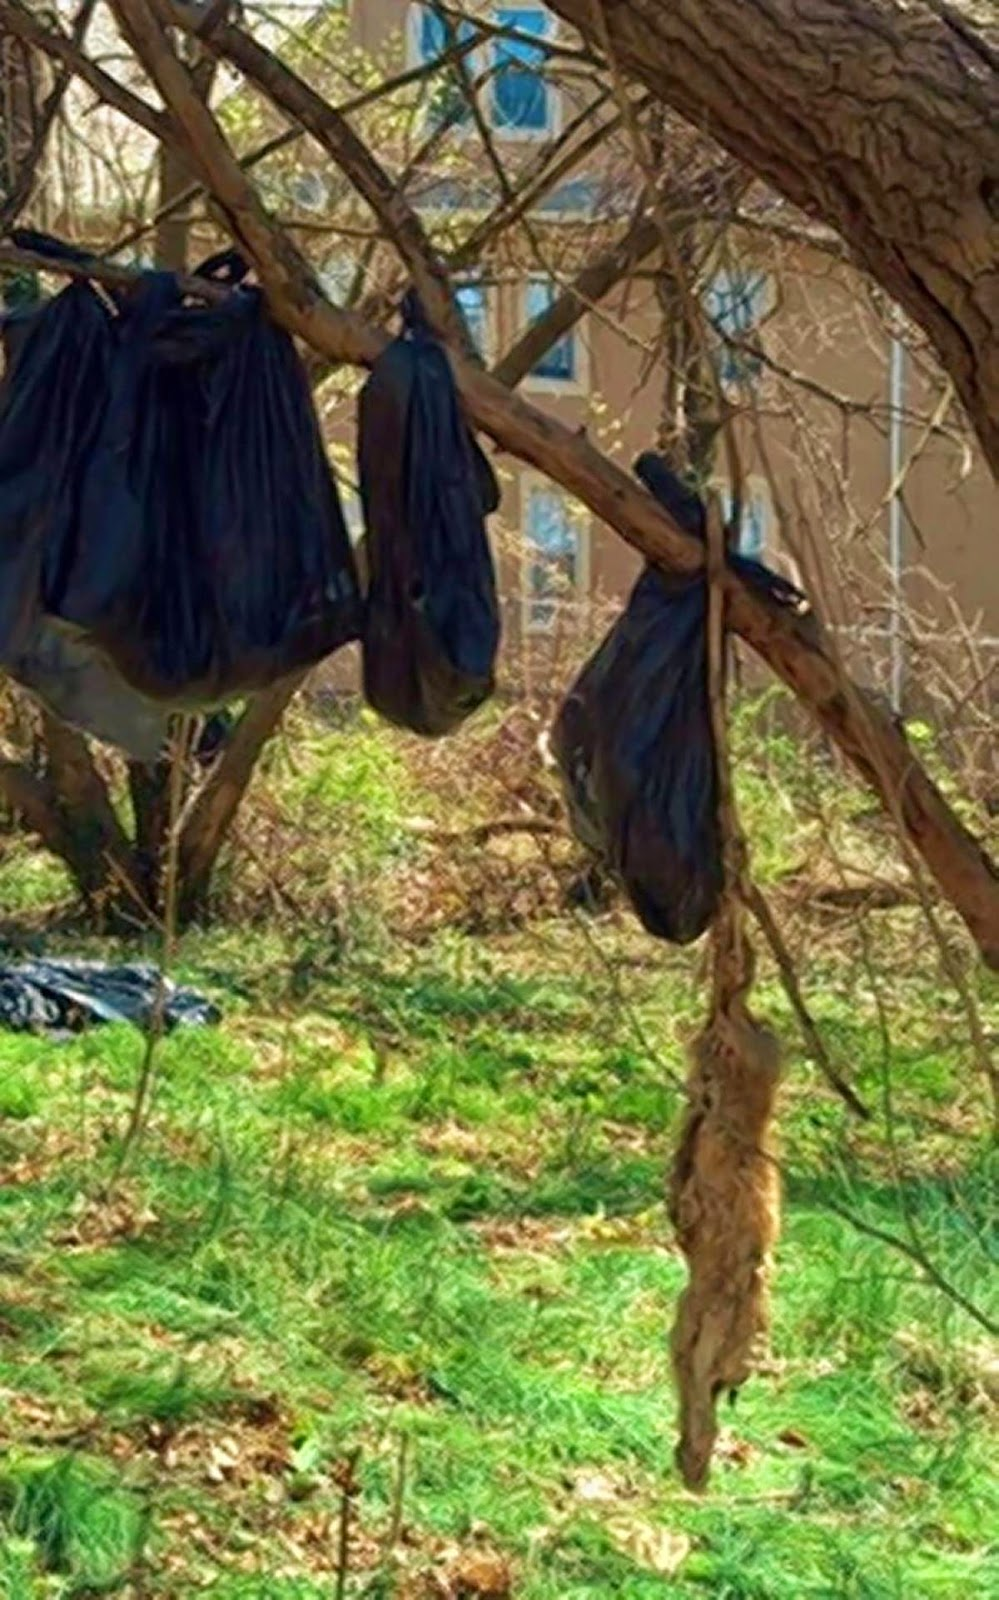 25 Dead Cats Found Hanging In Ritualistic Display